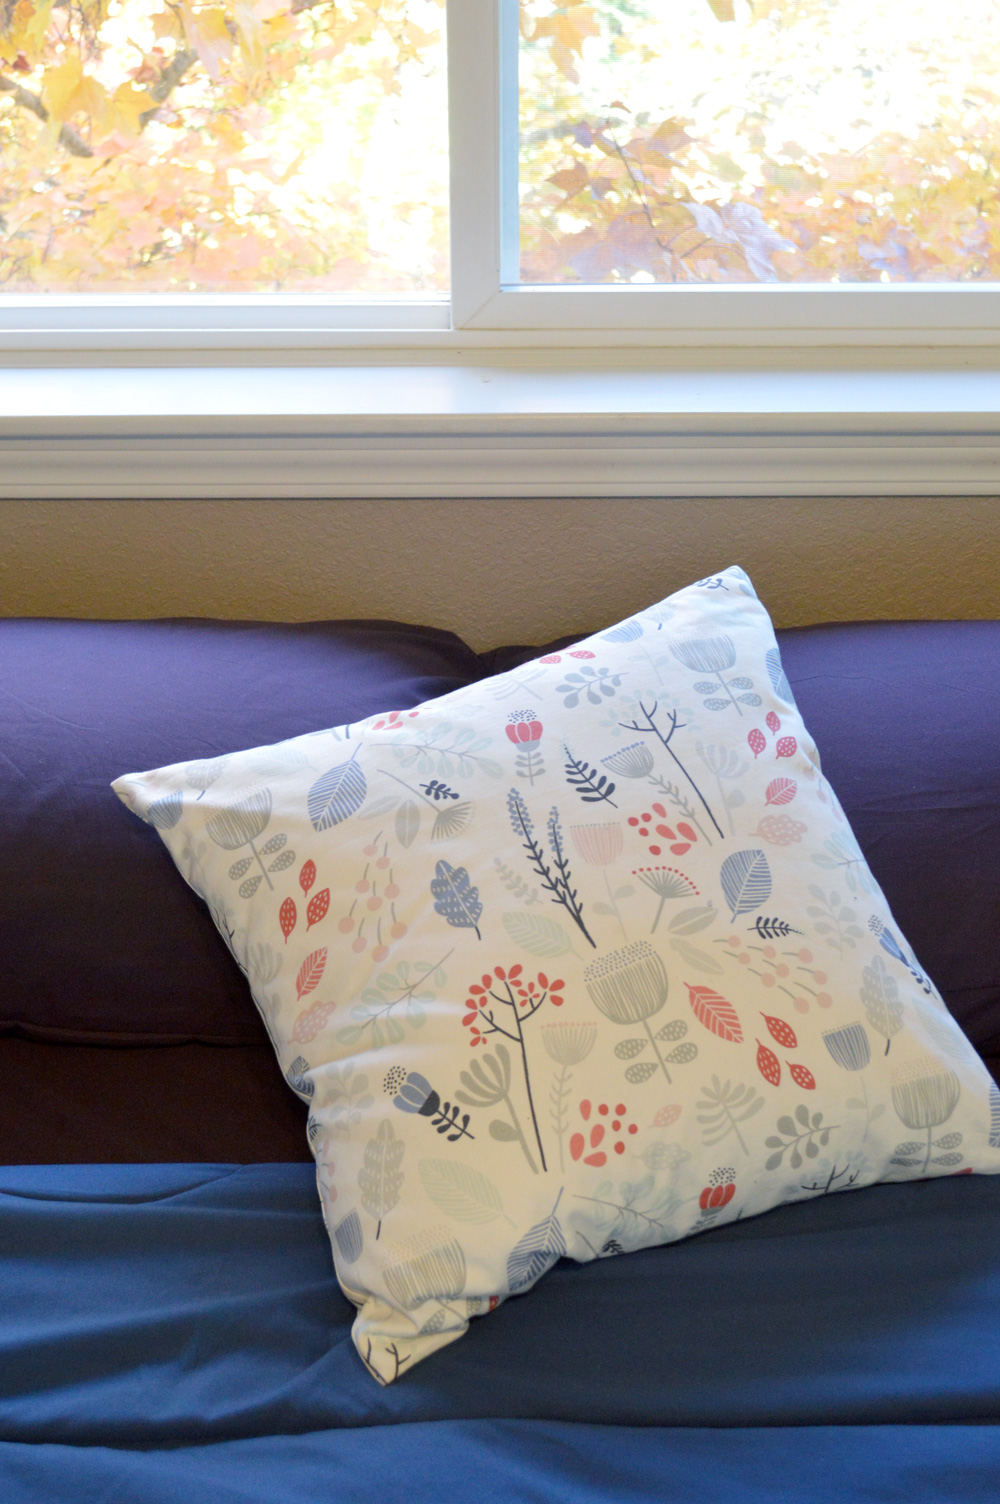 Minted printed throw pillow - Mommy Scene